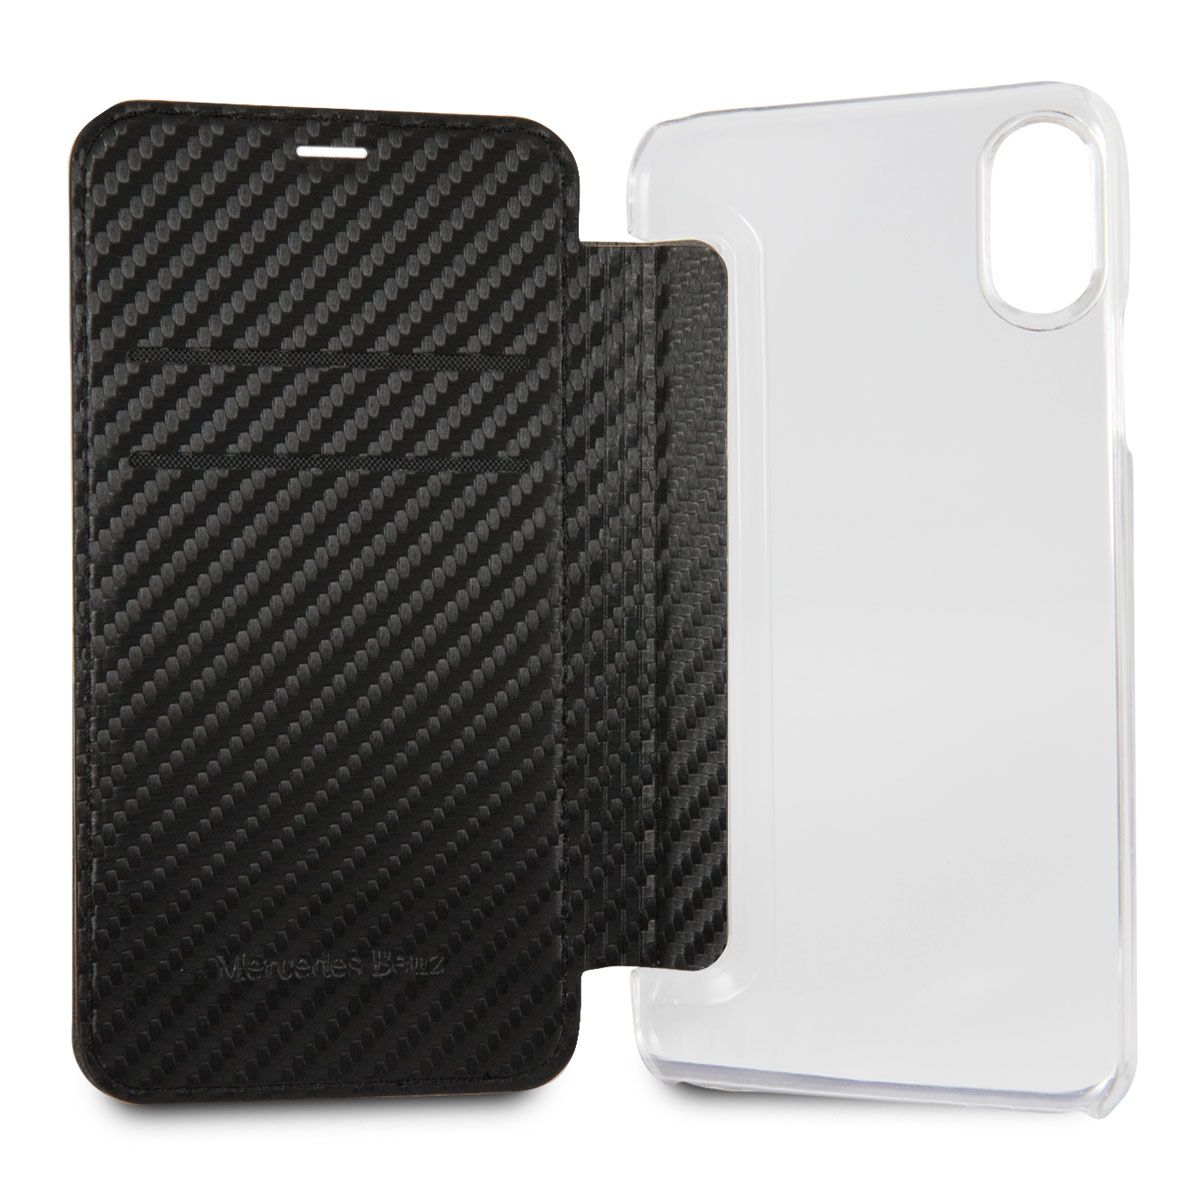 Mercedes iPhone X Dynamic Bookcase Carbon Black, картинка 3